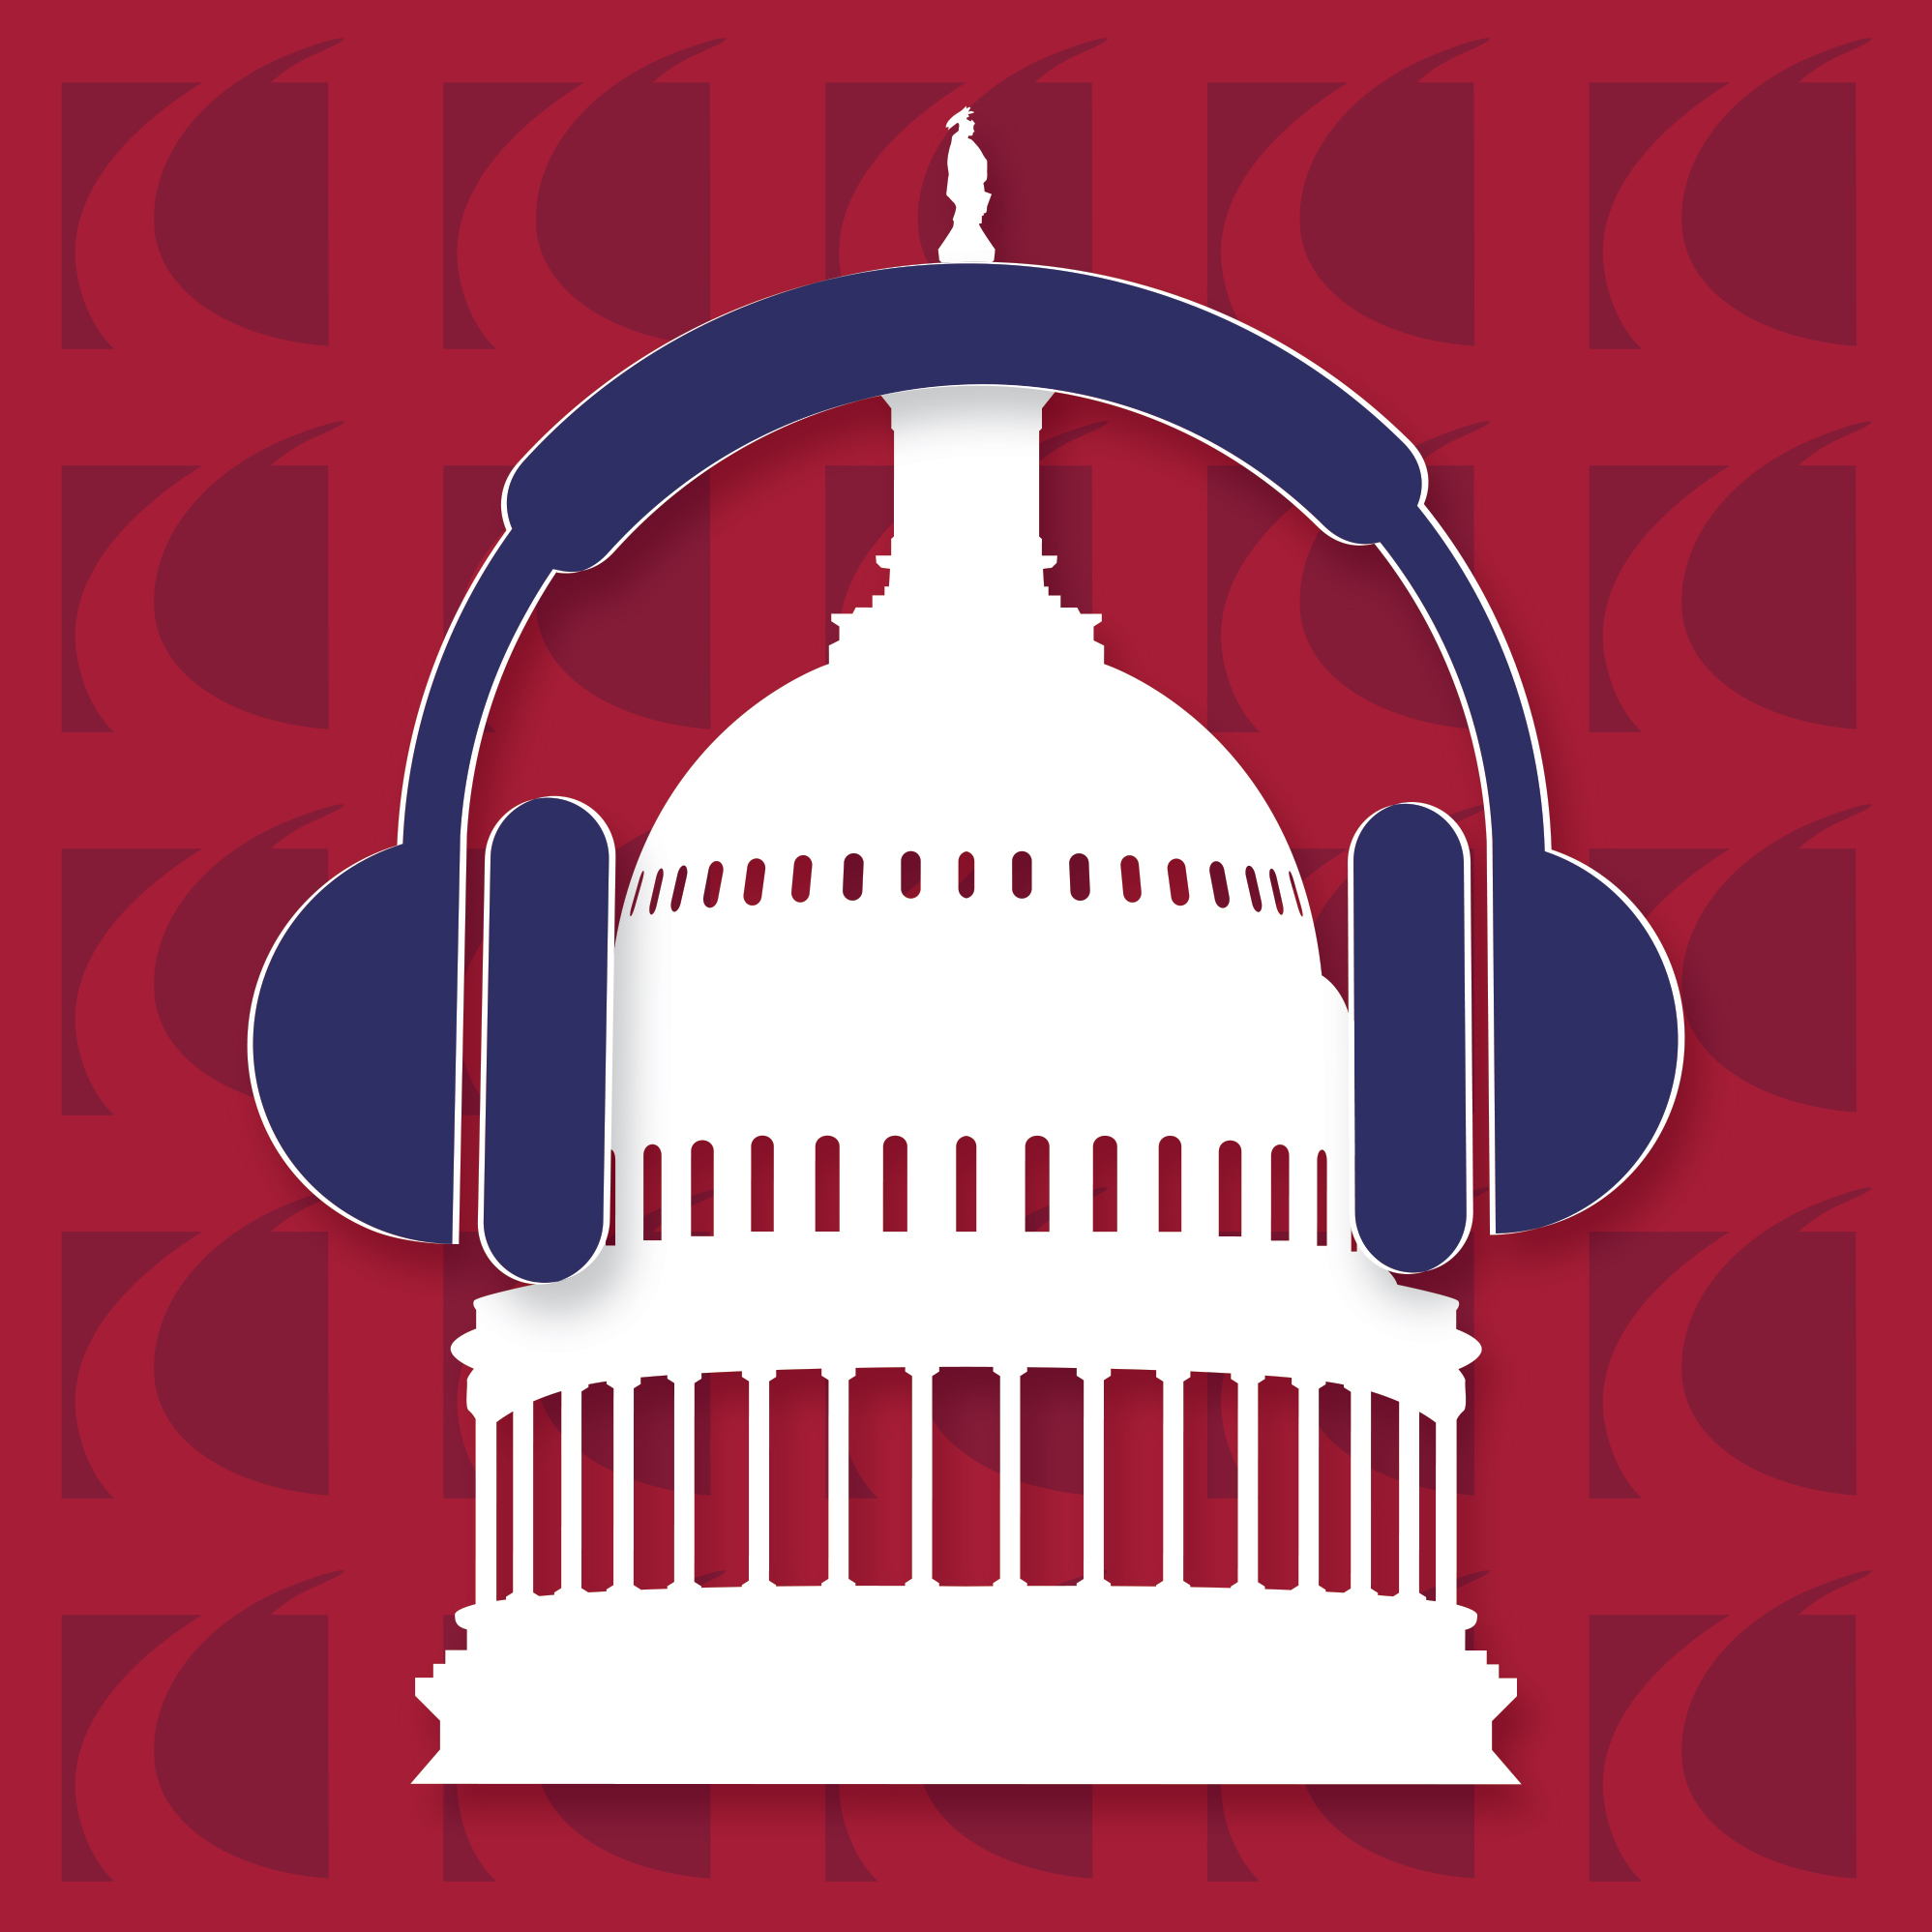 August 4: Fastest 5 Minutes, The Podcast Gov't Contractors Can't Do Without - Crowell & Moring LLP